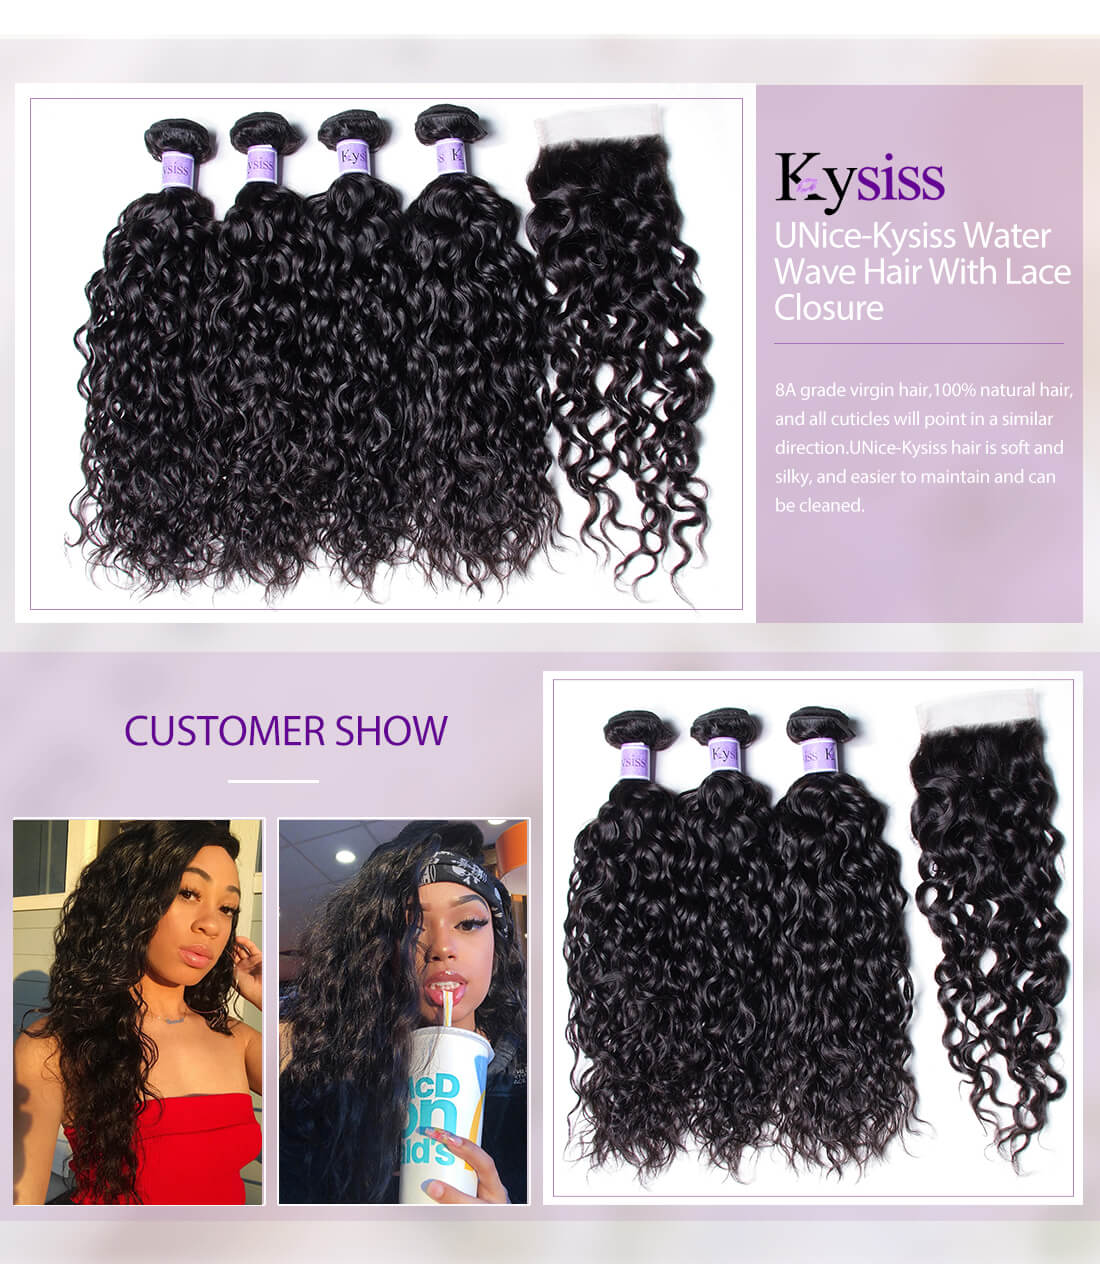 UNice kysiss water wave hair with lace closure